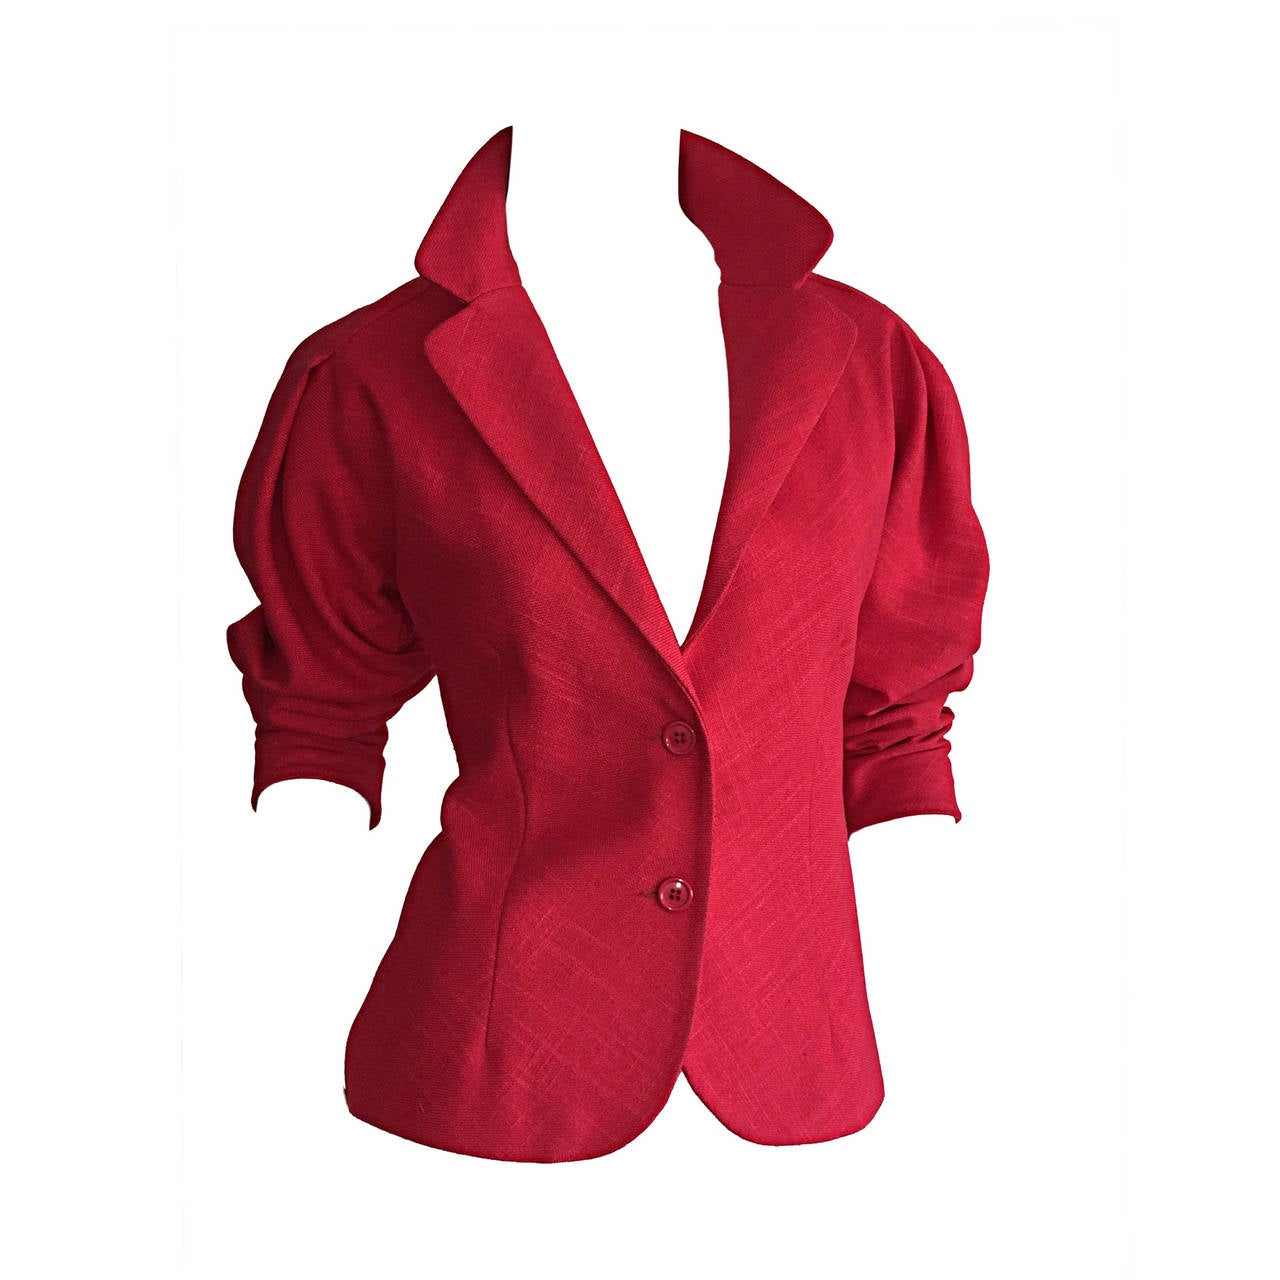 Vintage Halston Candy Apple Red Fitted Linen Blazer Jacket For Sale